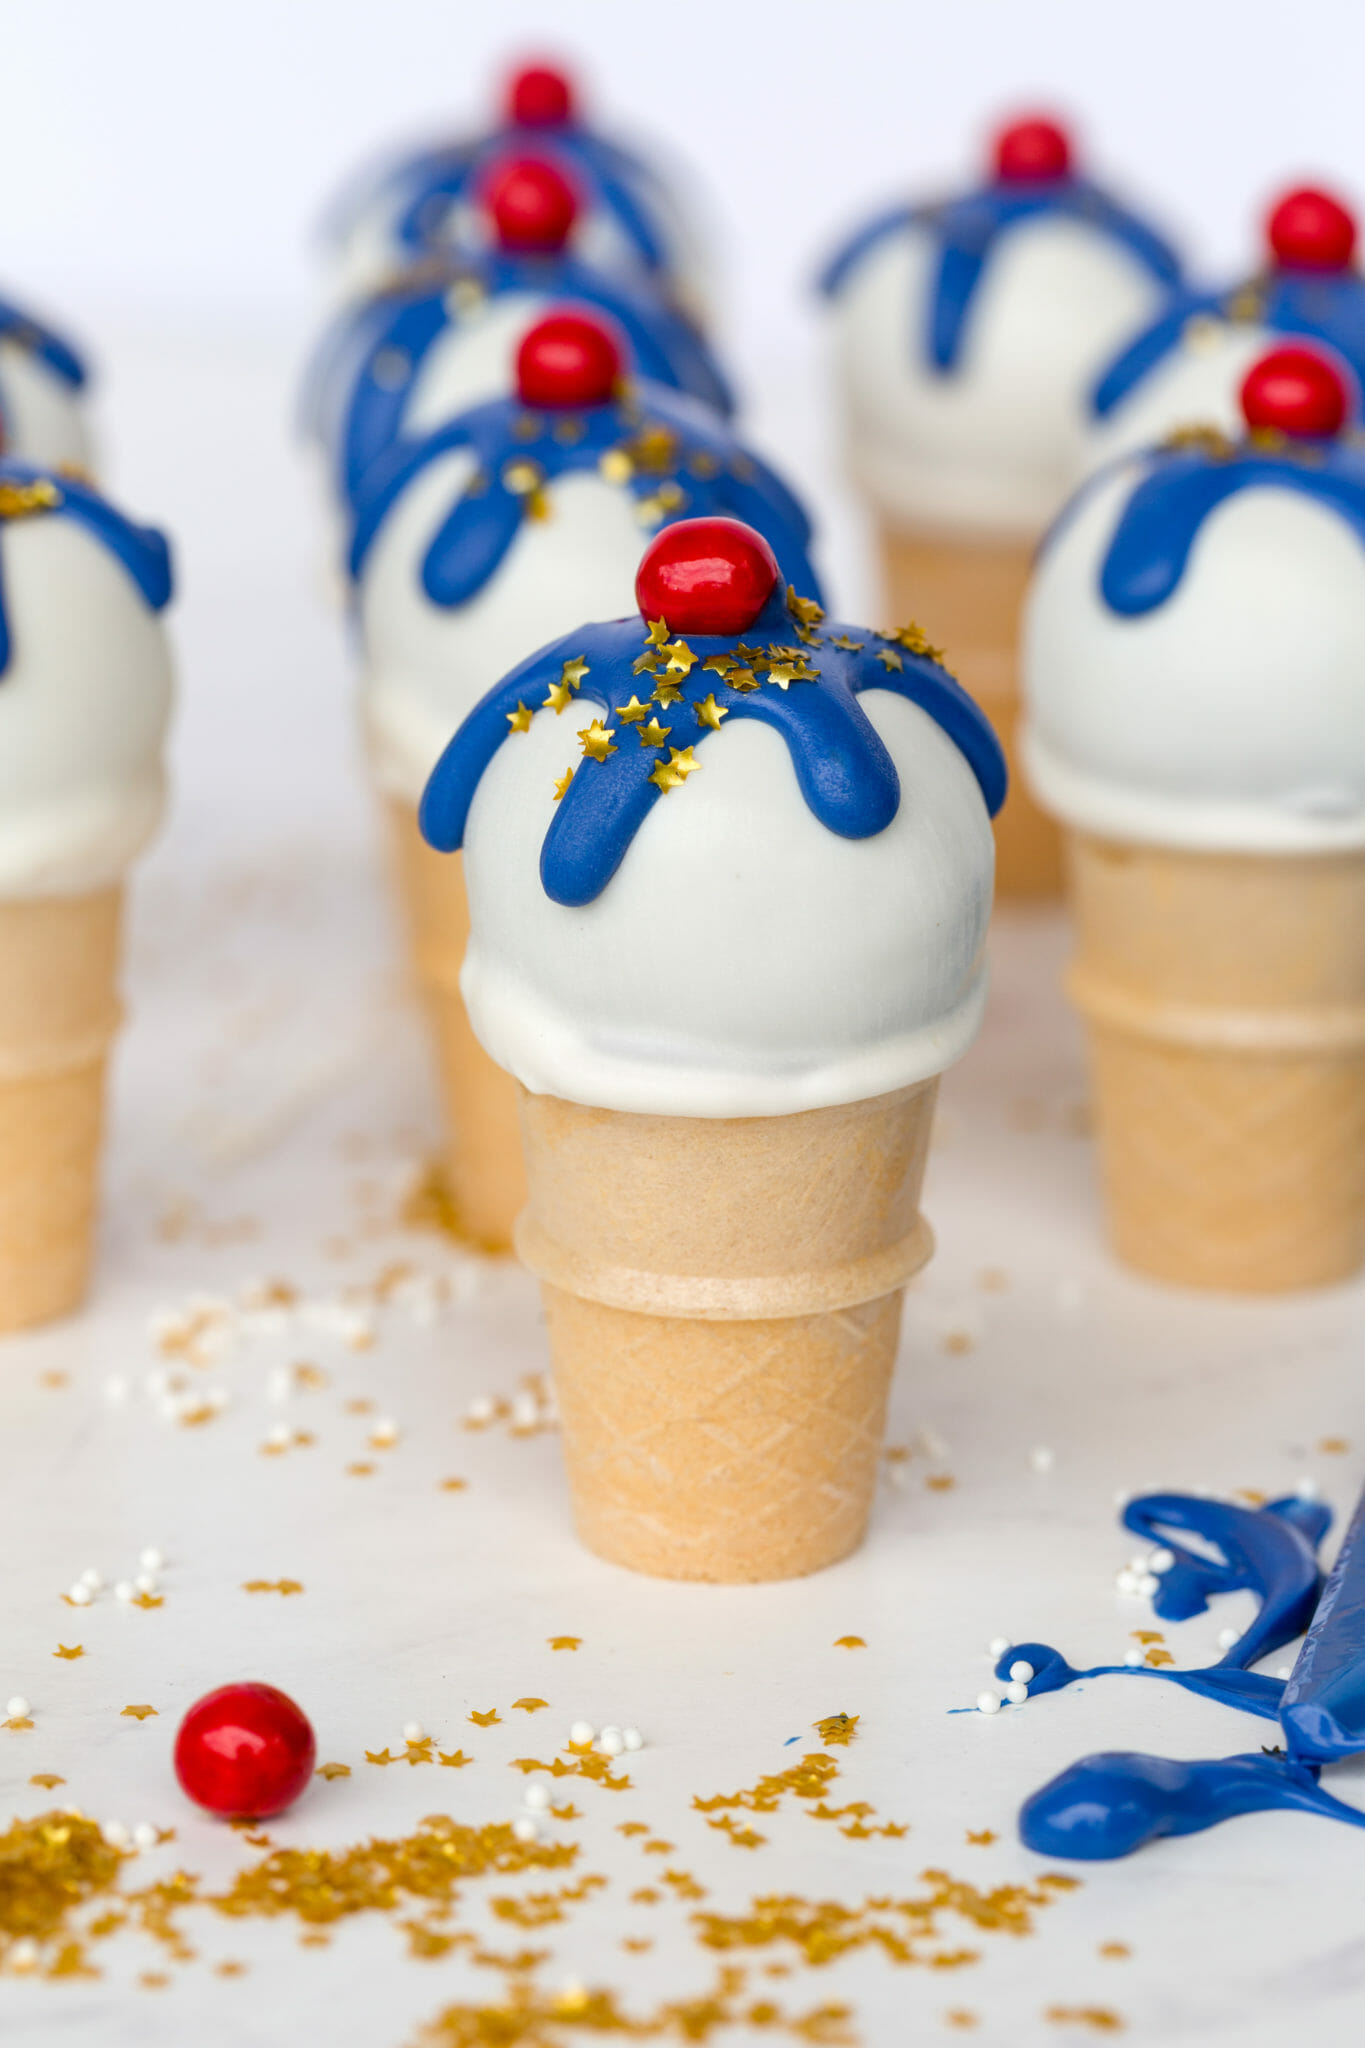 Fourth of July Ice Cream Cone Cake Pops | summer dessert recipes | July 4th desserts | cake pop recipes || JennyCookies.com #recipe #dessert #july4th #fourthofjuly #cakepops #jennycookies